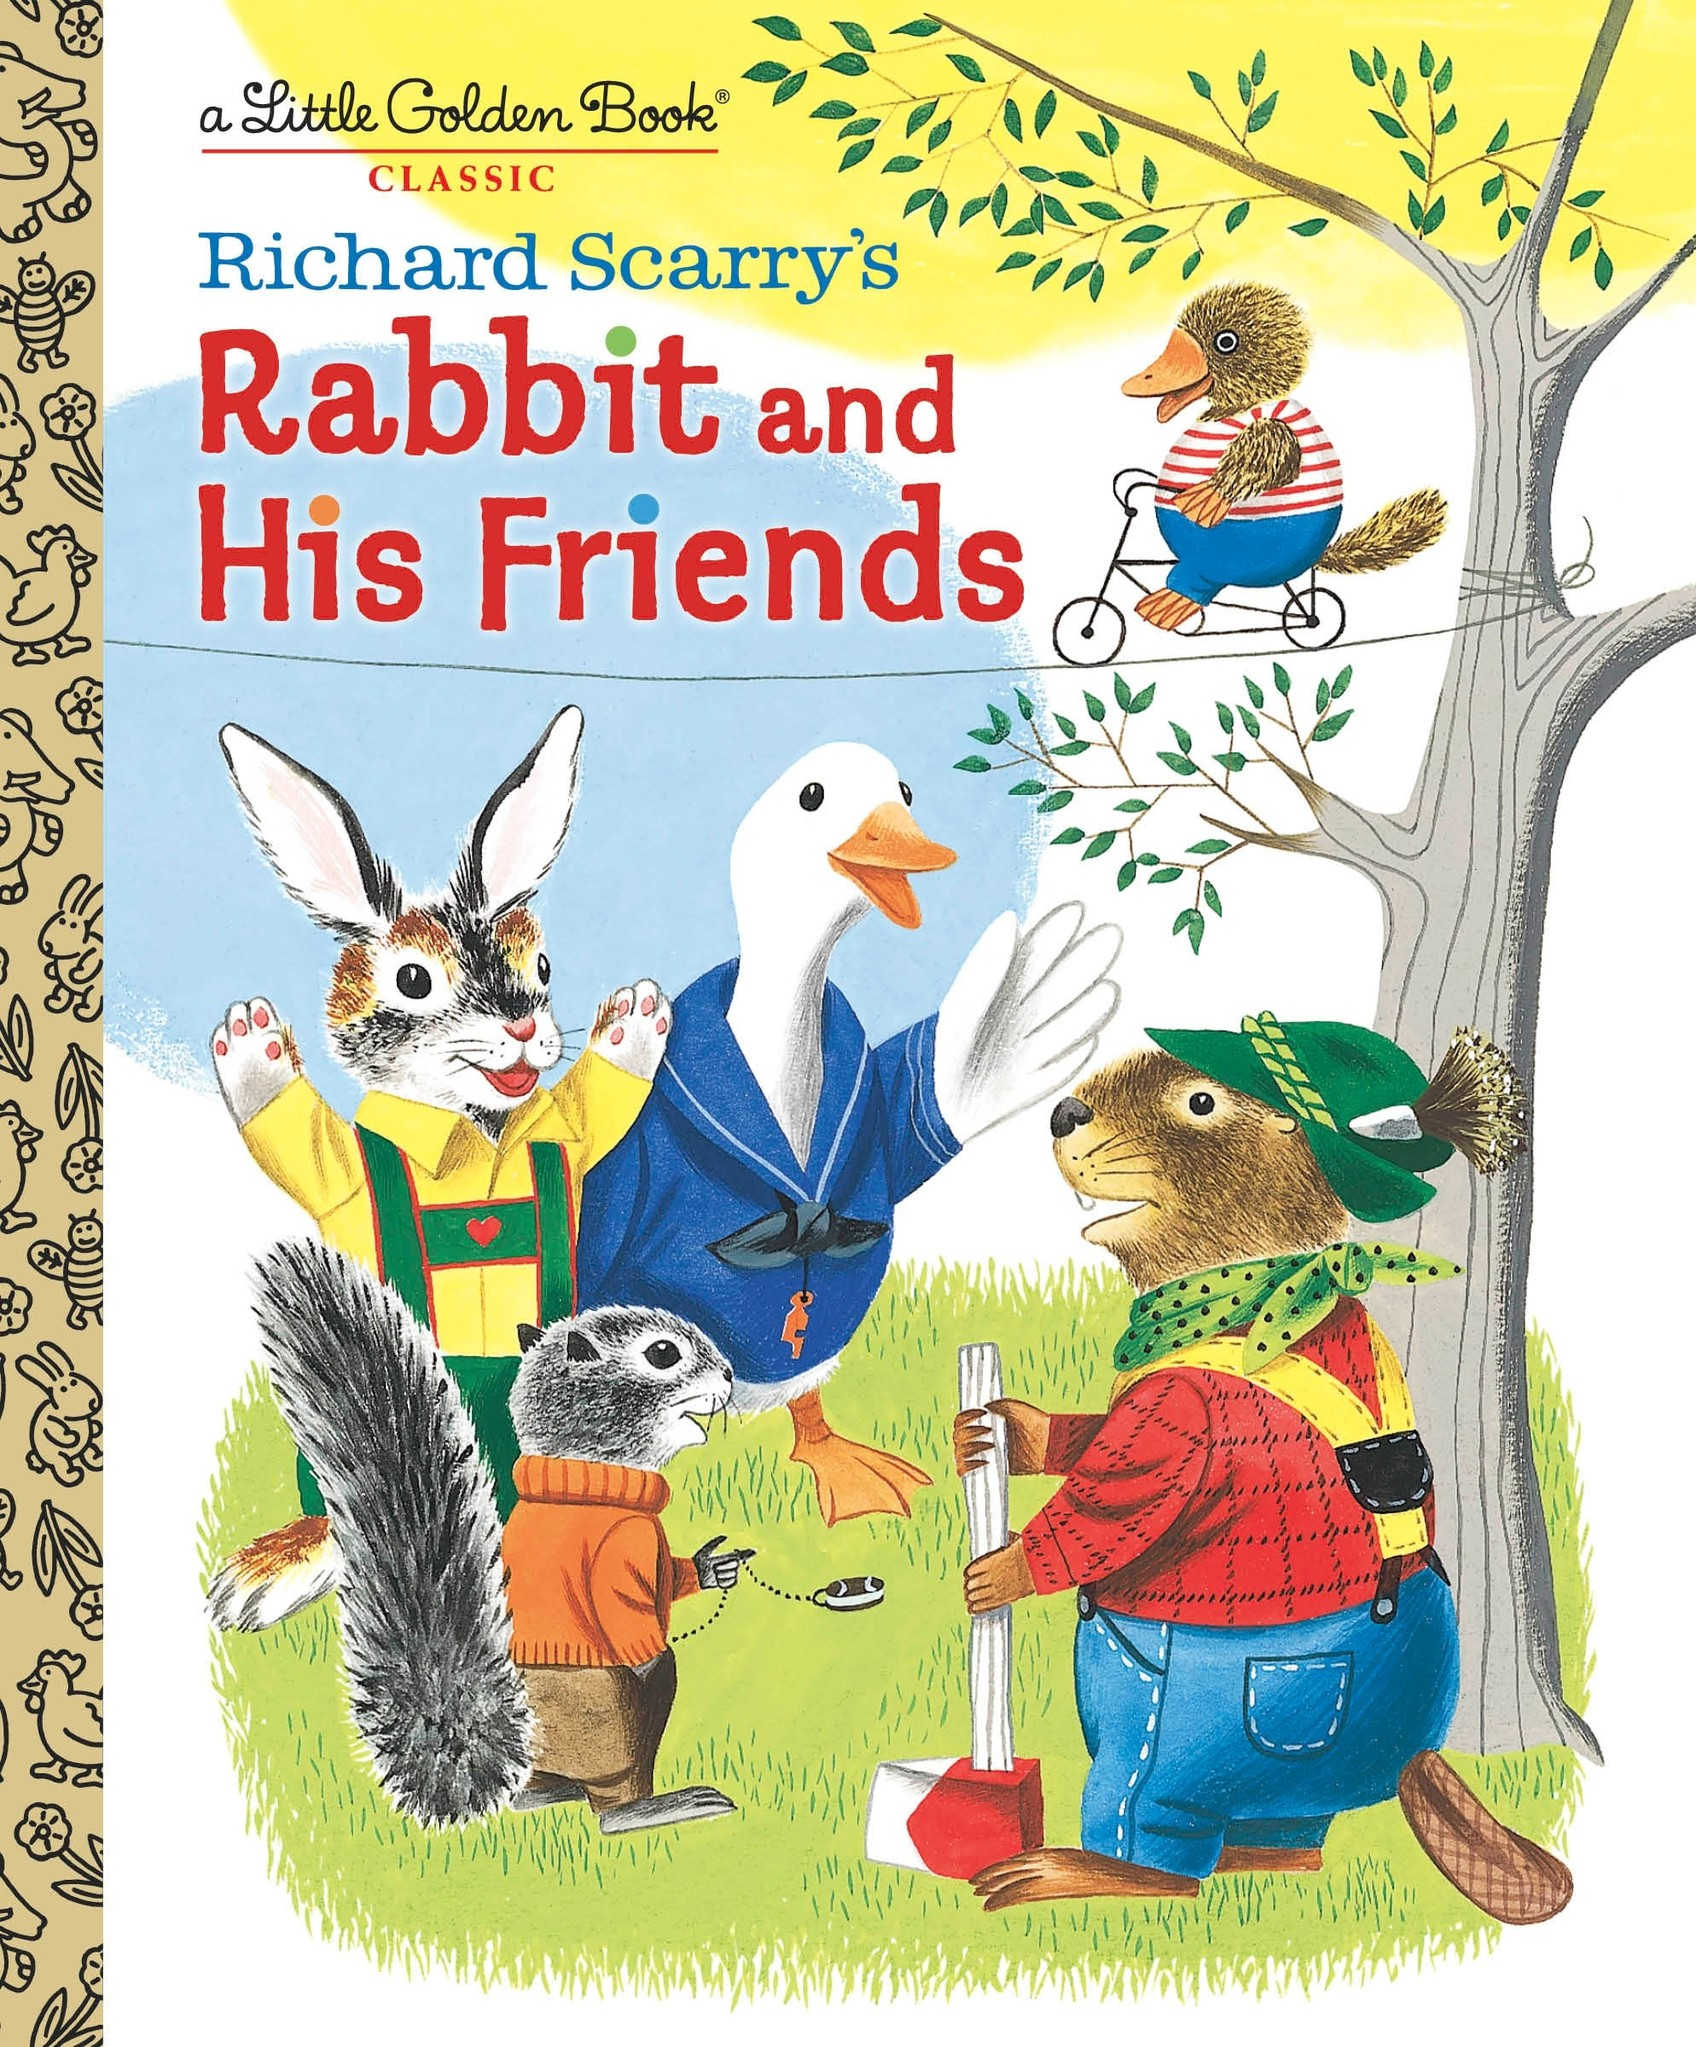 Little Golden Book - Richard Scarry's Rabbit and His Friends LGB